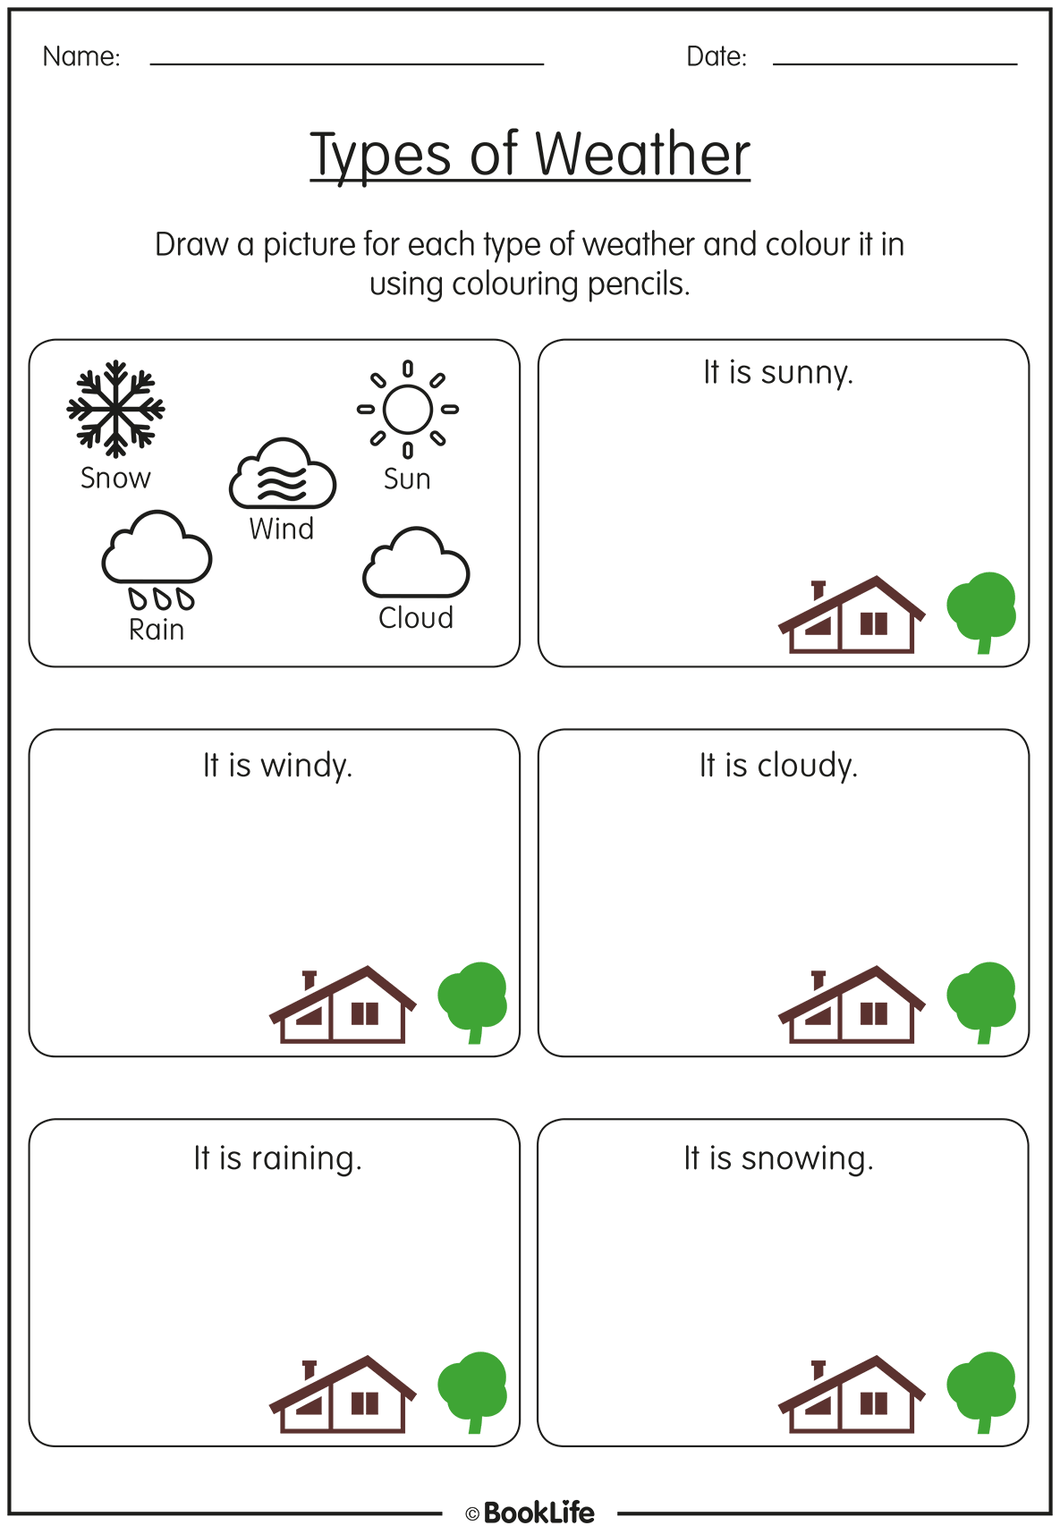 Types of Weather by BookLife